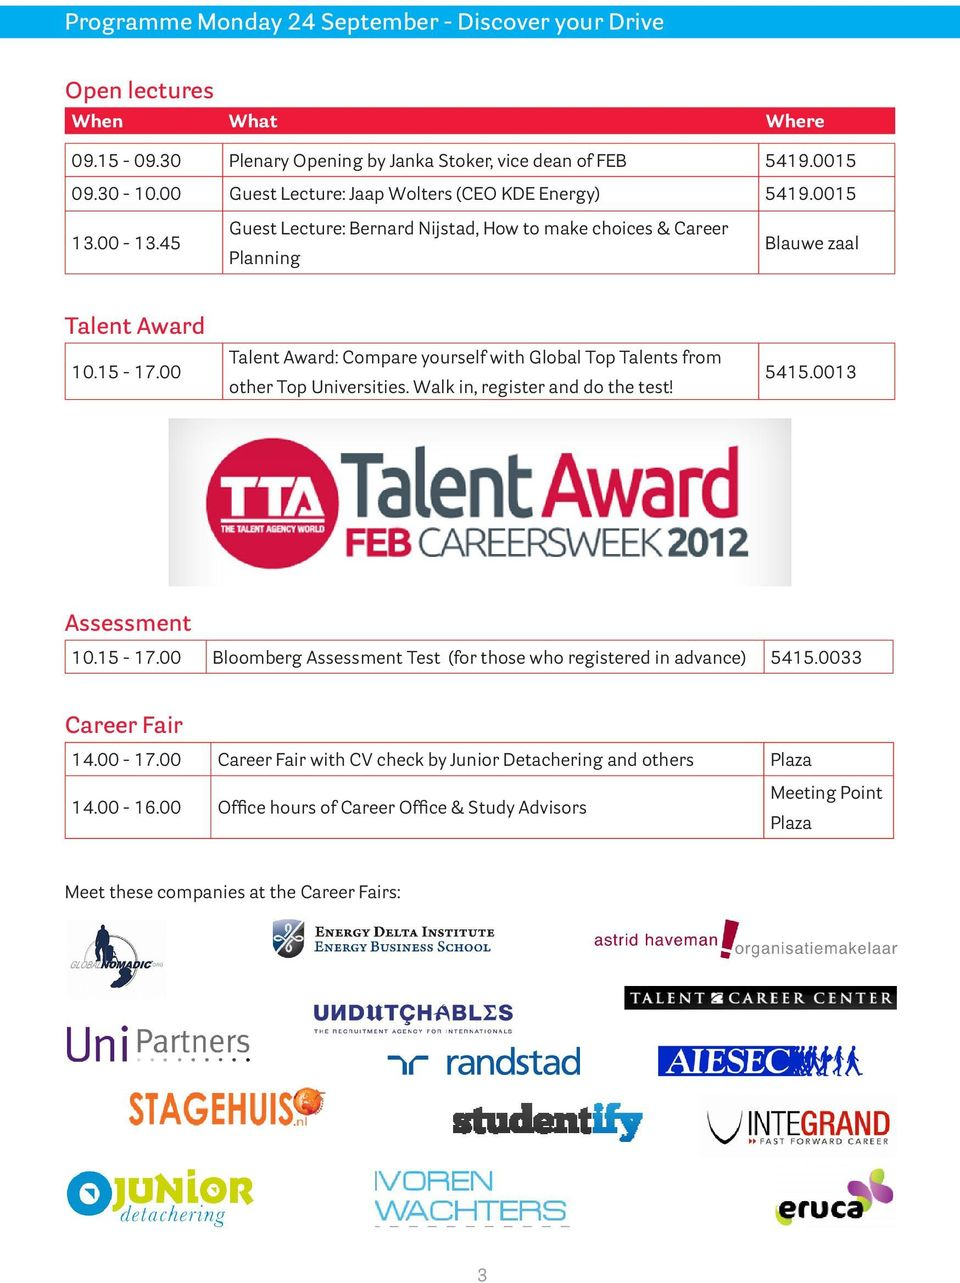 00 Talent Award: Compare yourself with Global Top Talents from other Top Universities. Walk in, register and do the test! 5415.0013 Assessment 10.15-17.